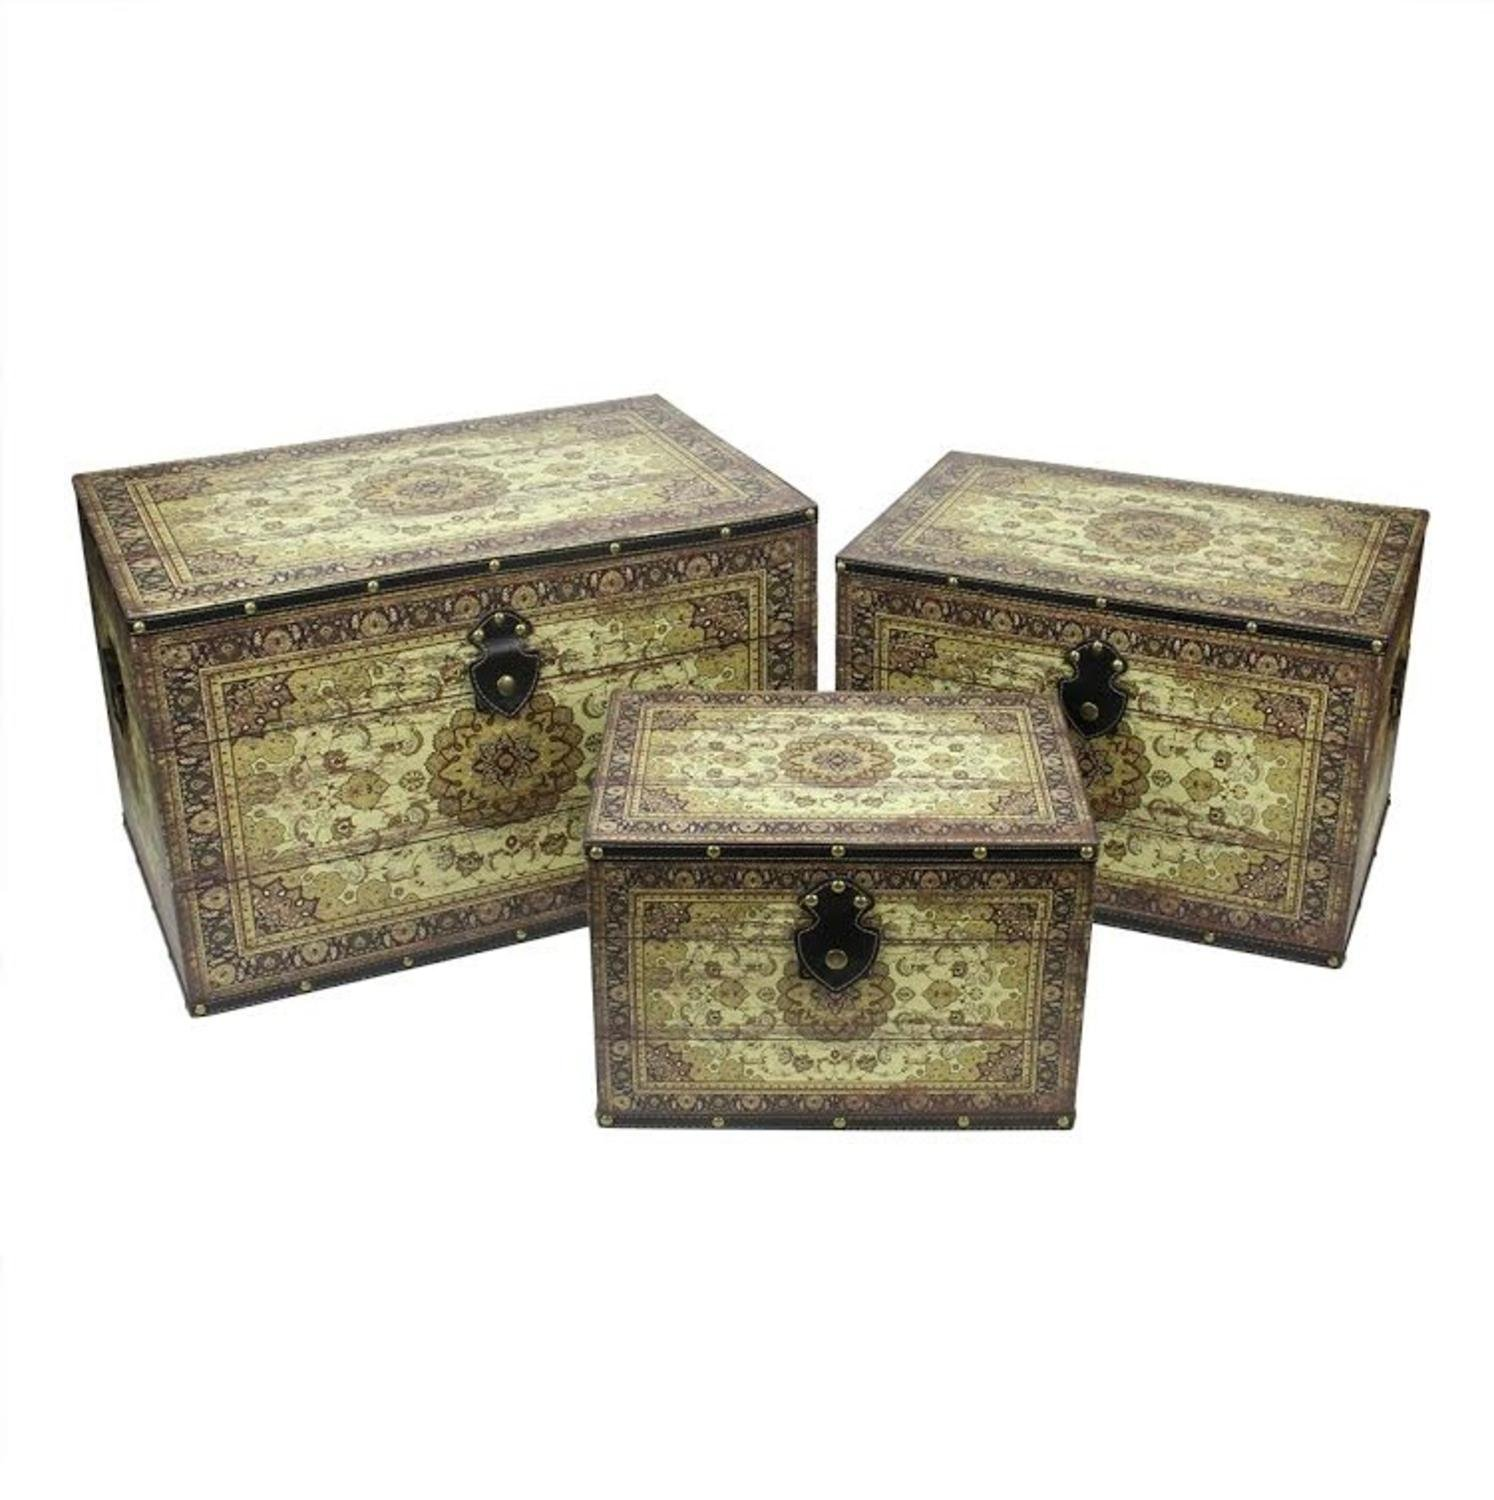 Northlight Set of 3 Oriental-Style Earth Tone Decorative Wooden Storage Boxes, 22'', Brown/Cream